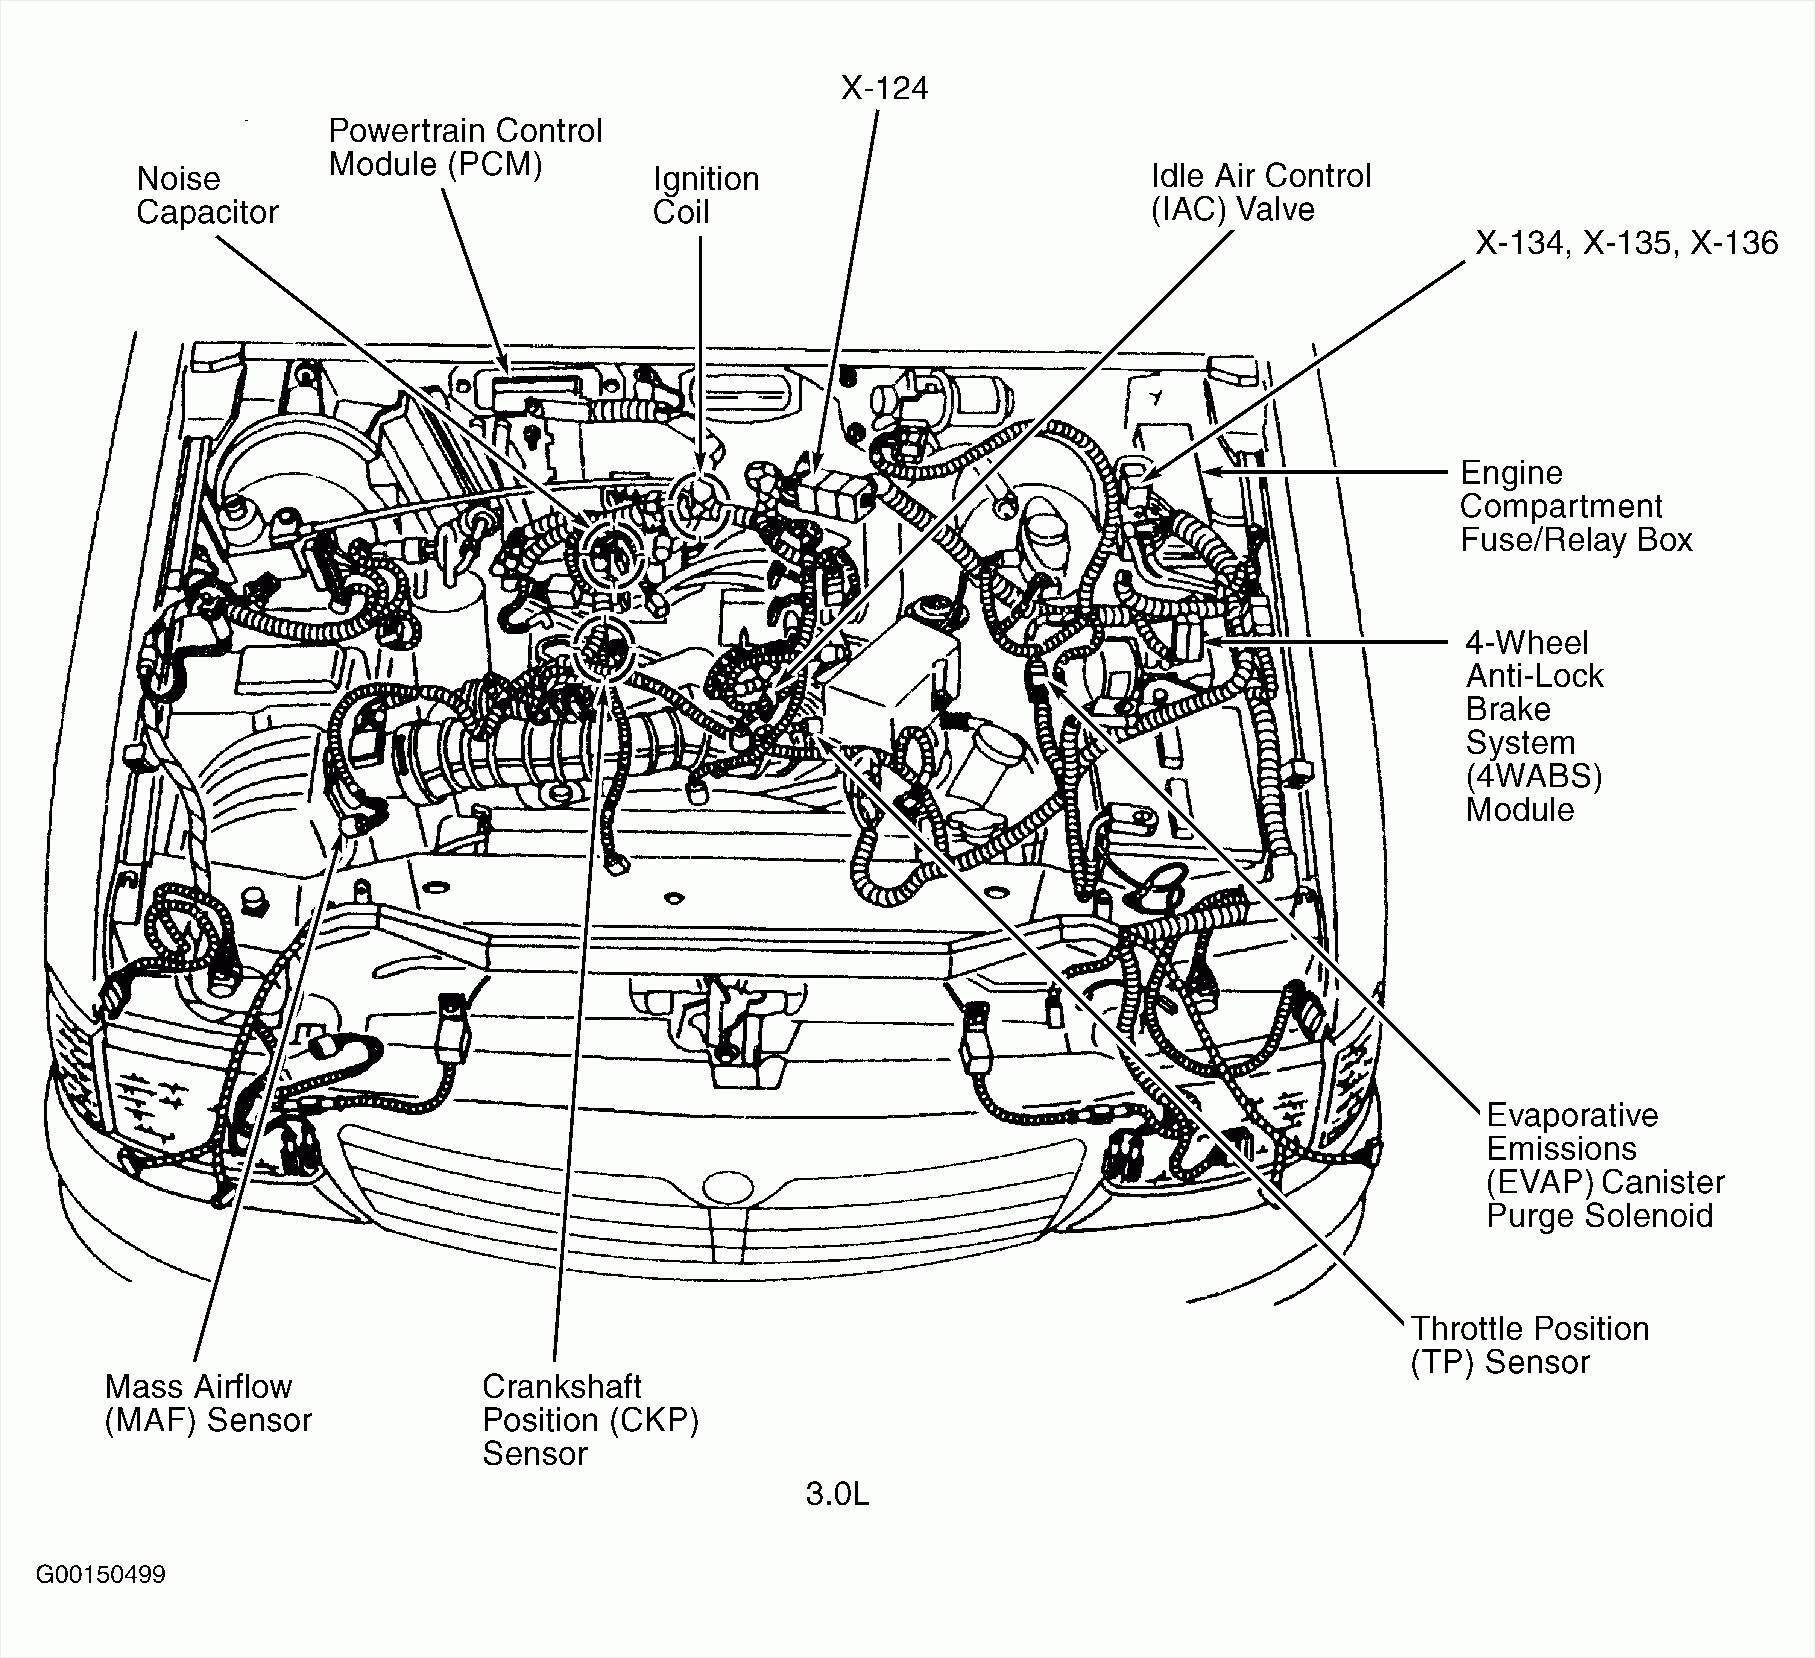 1500cc Vw Engine Diagram Wiring Diagram Rung Library Rung Library Emilia Fise It